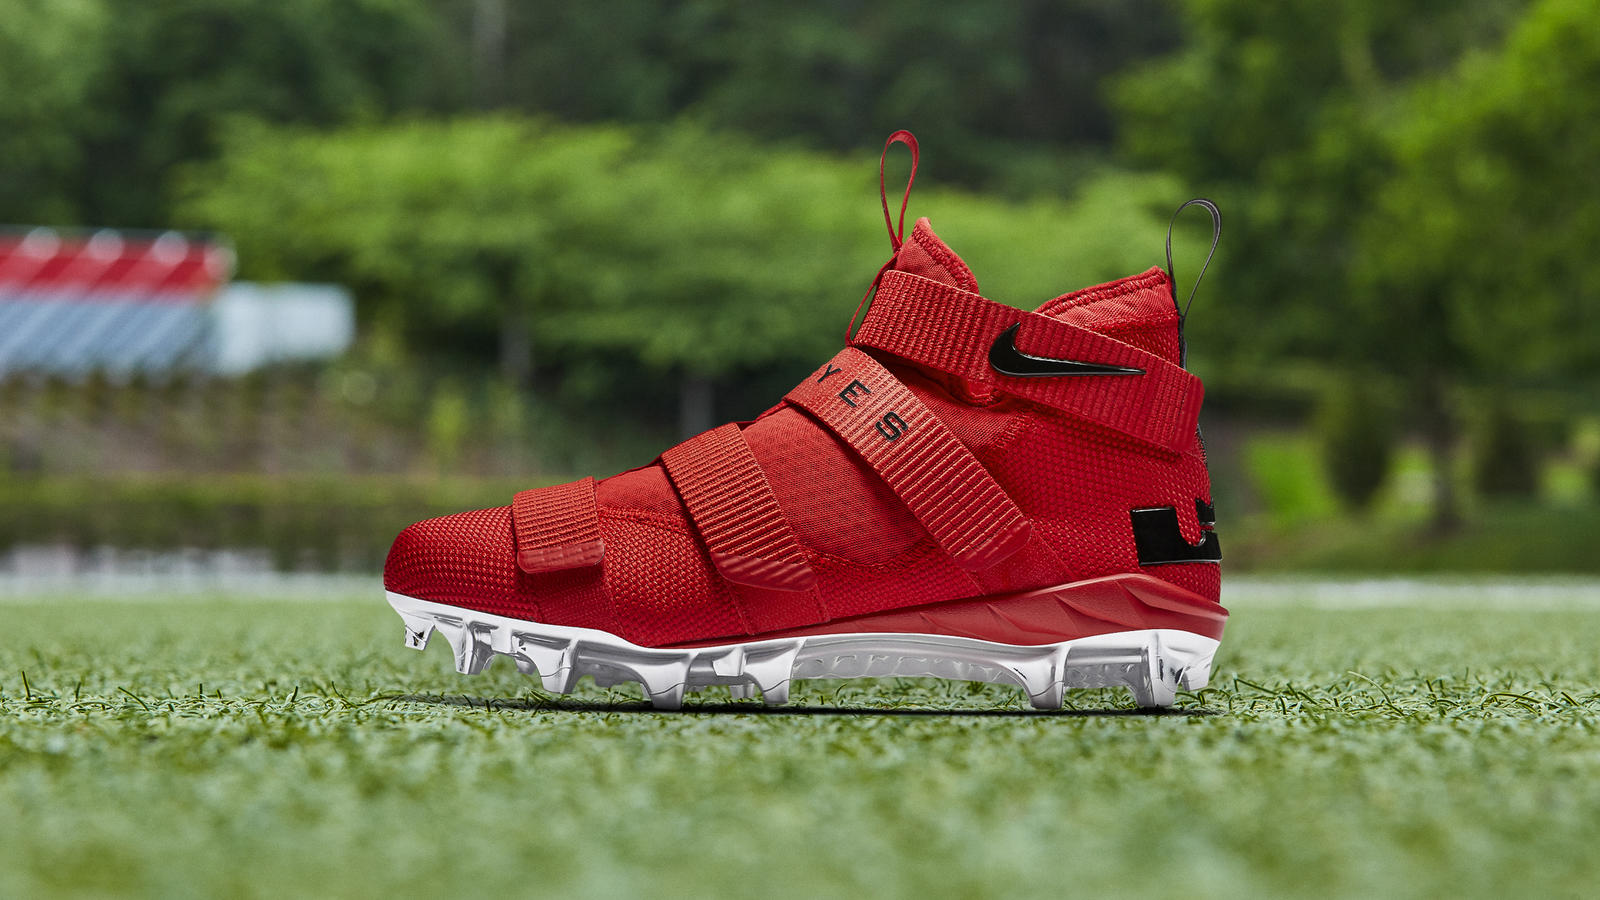 2b09d100345cd Nike LeBron Soldier 11 (Ohio State) - Nike News